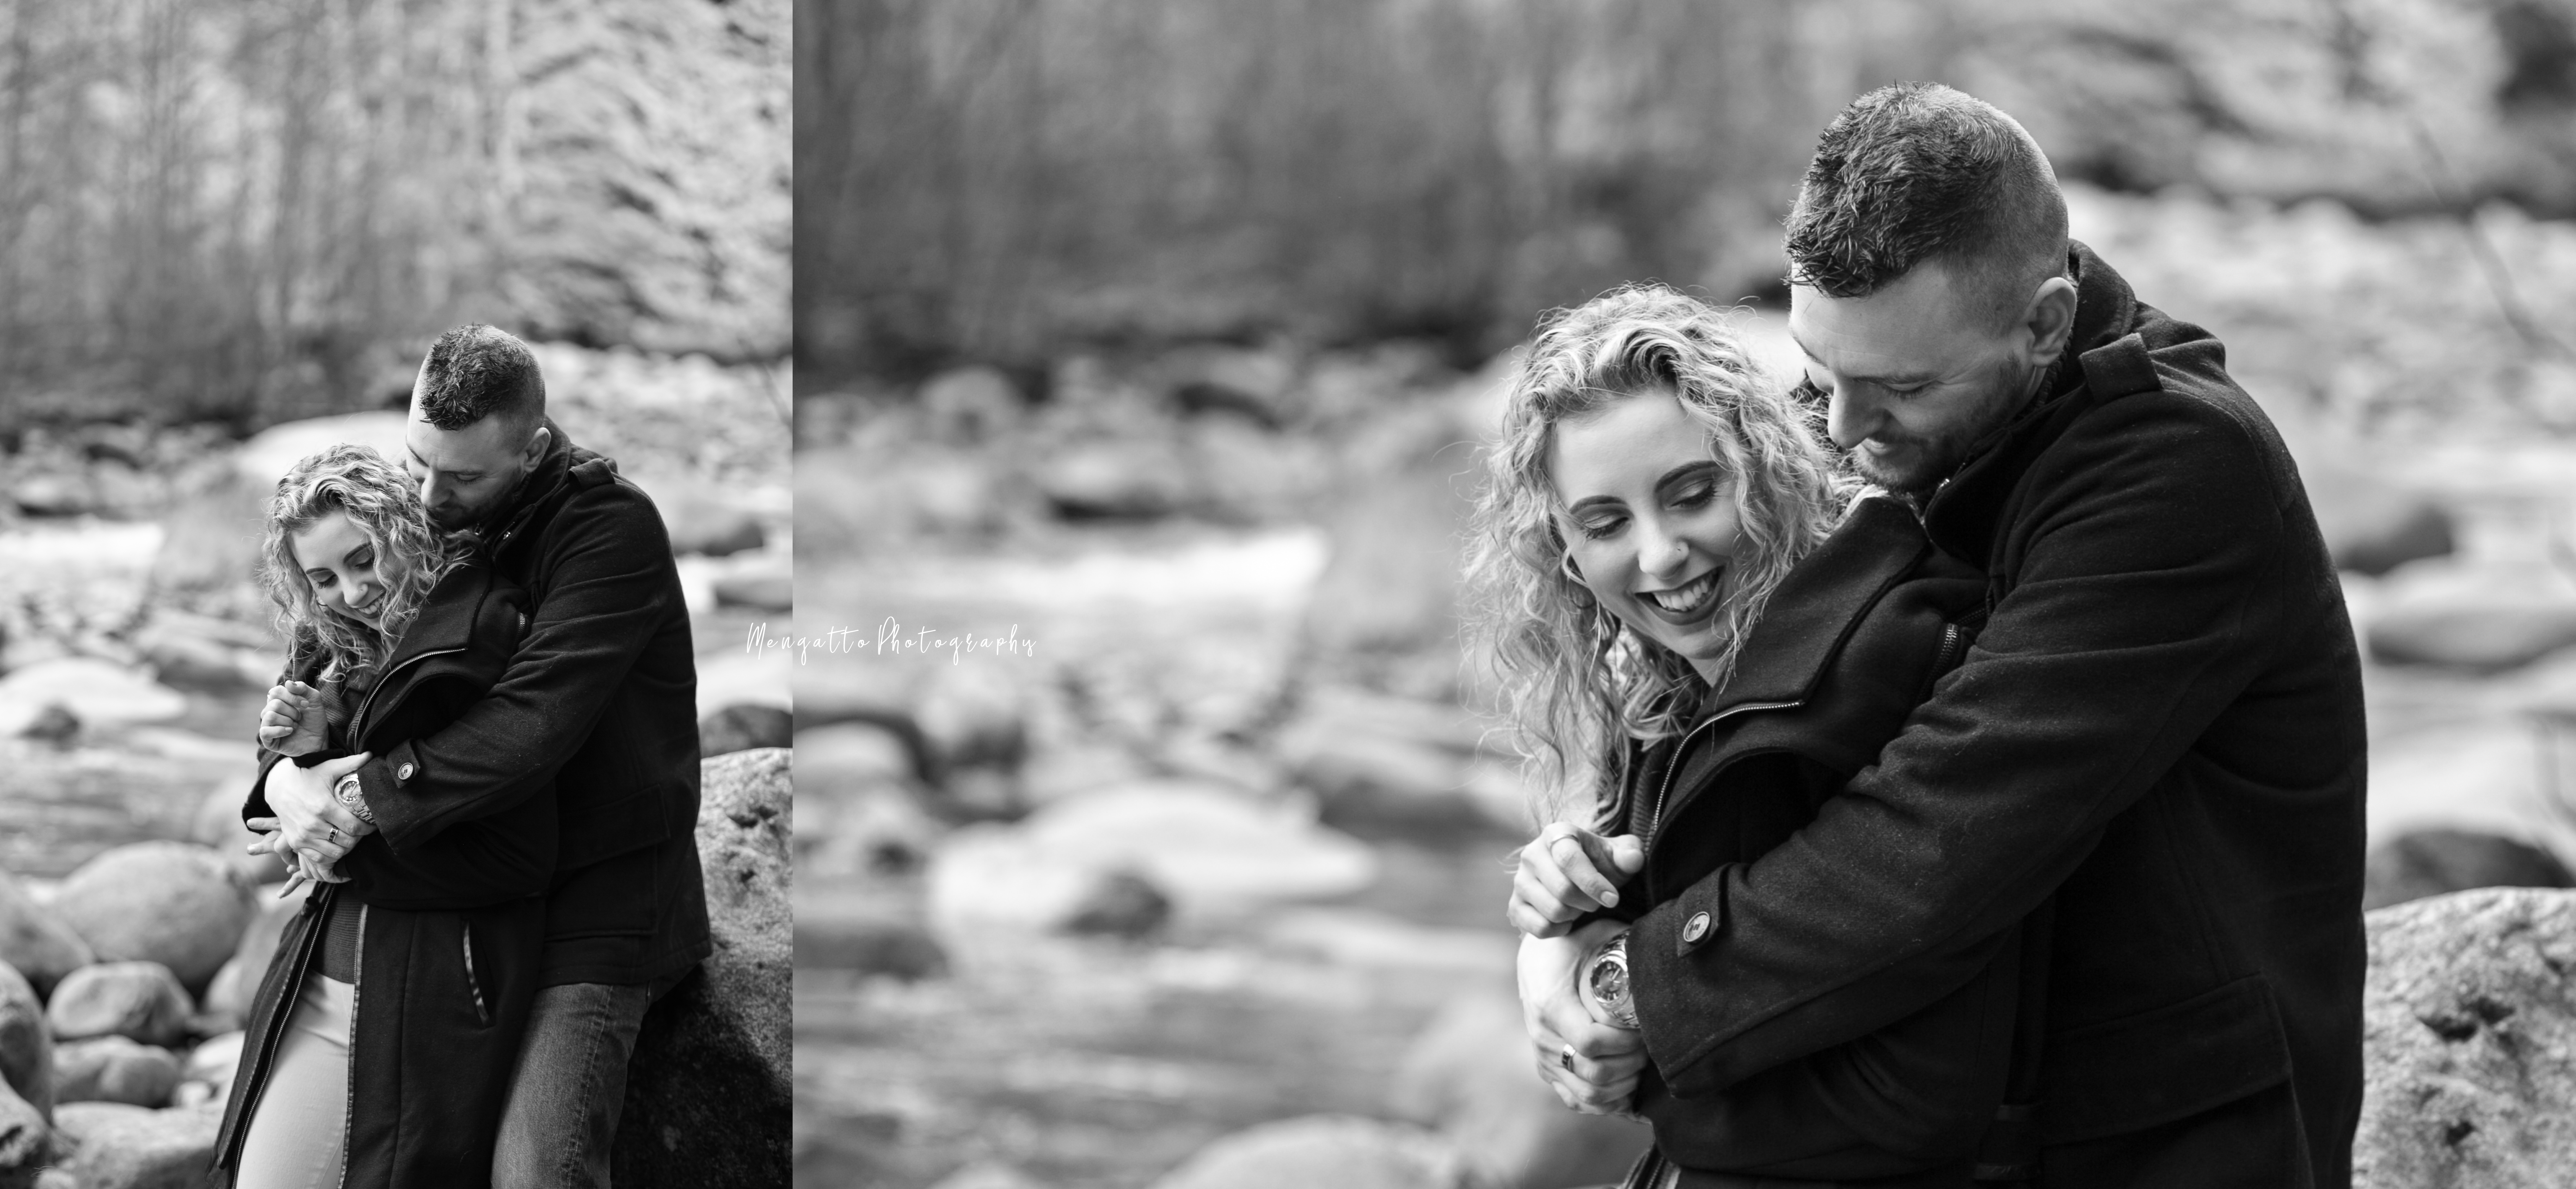 Kat & Eric's Engagement Session-49-side